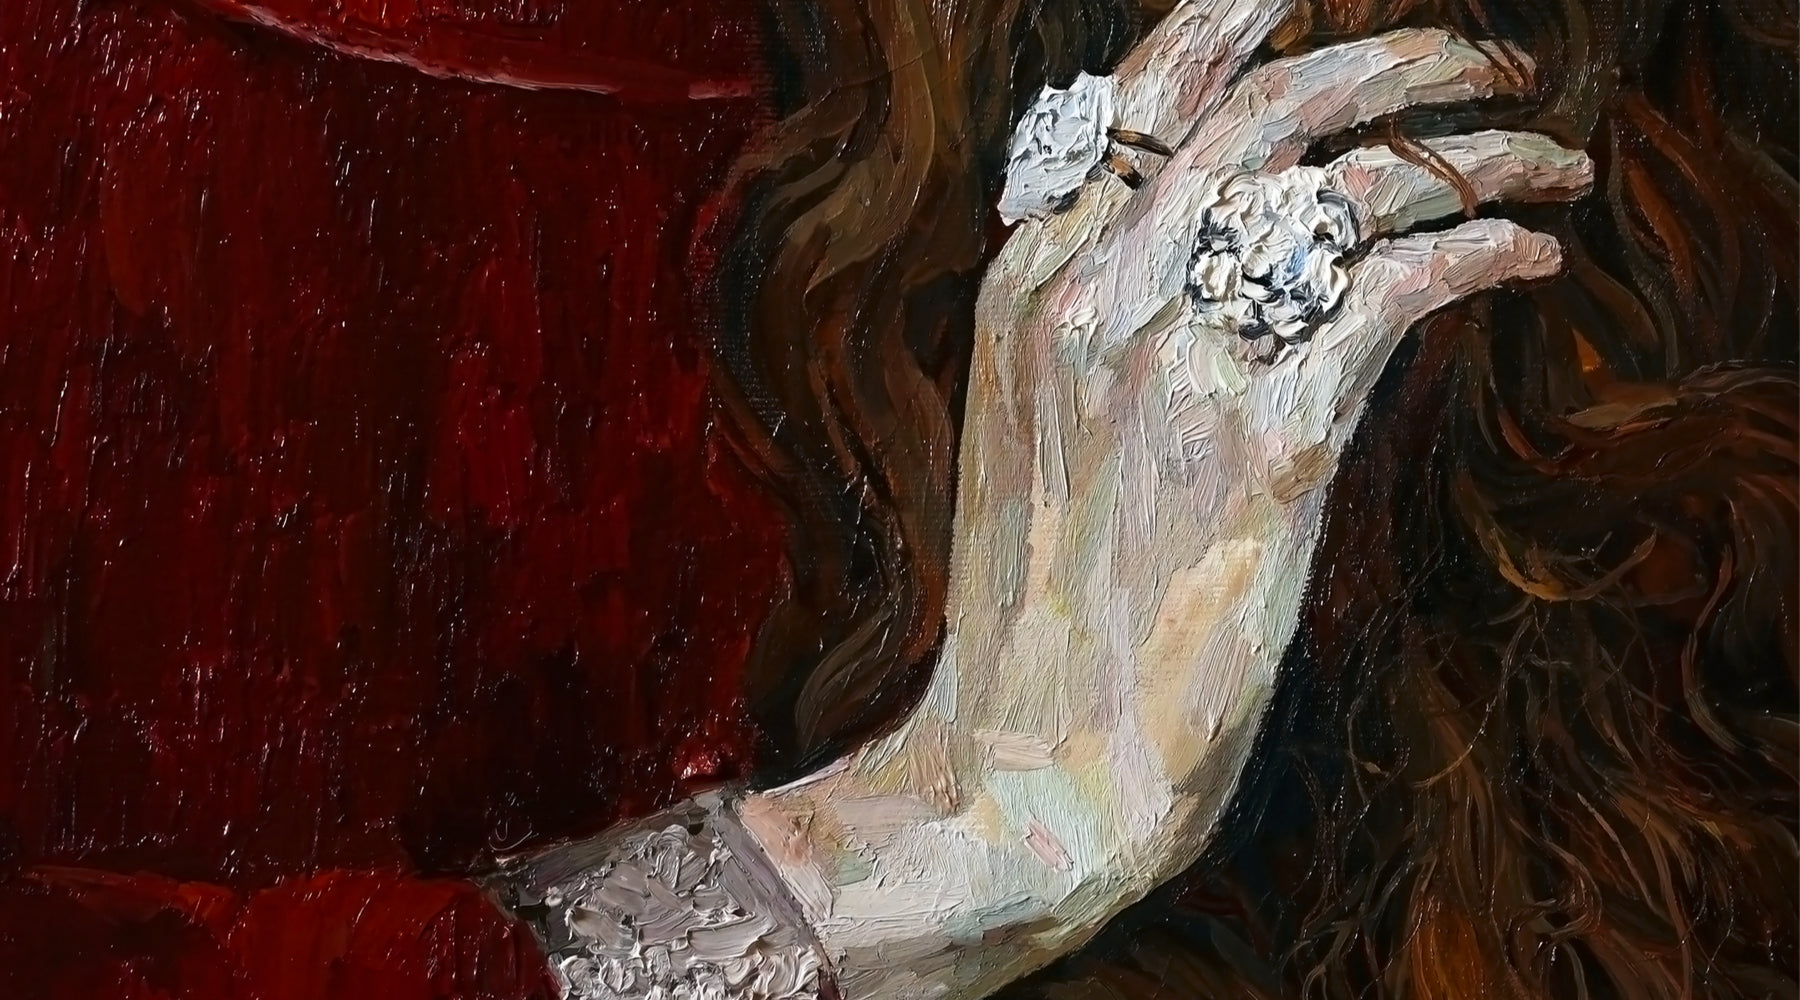 Painting of woman's hand with diamond ring.